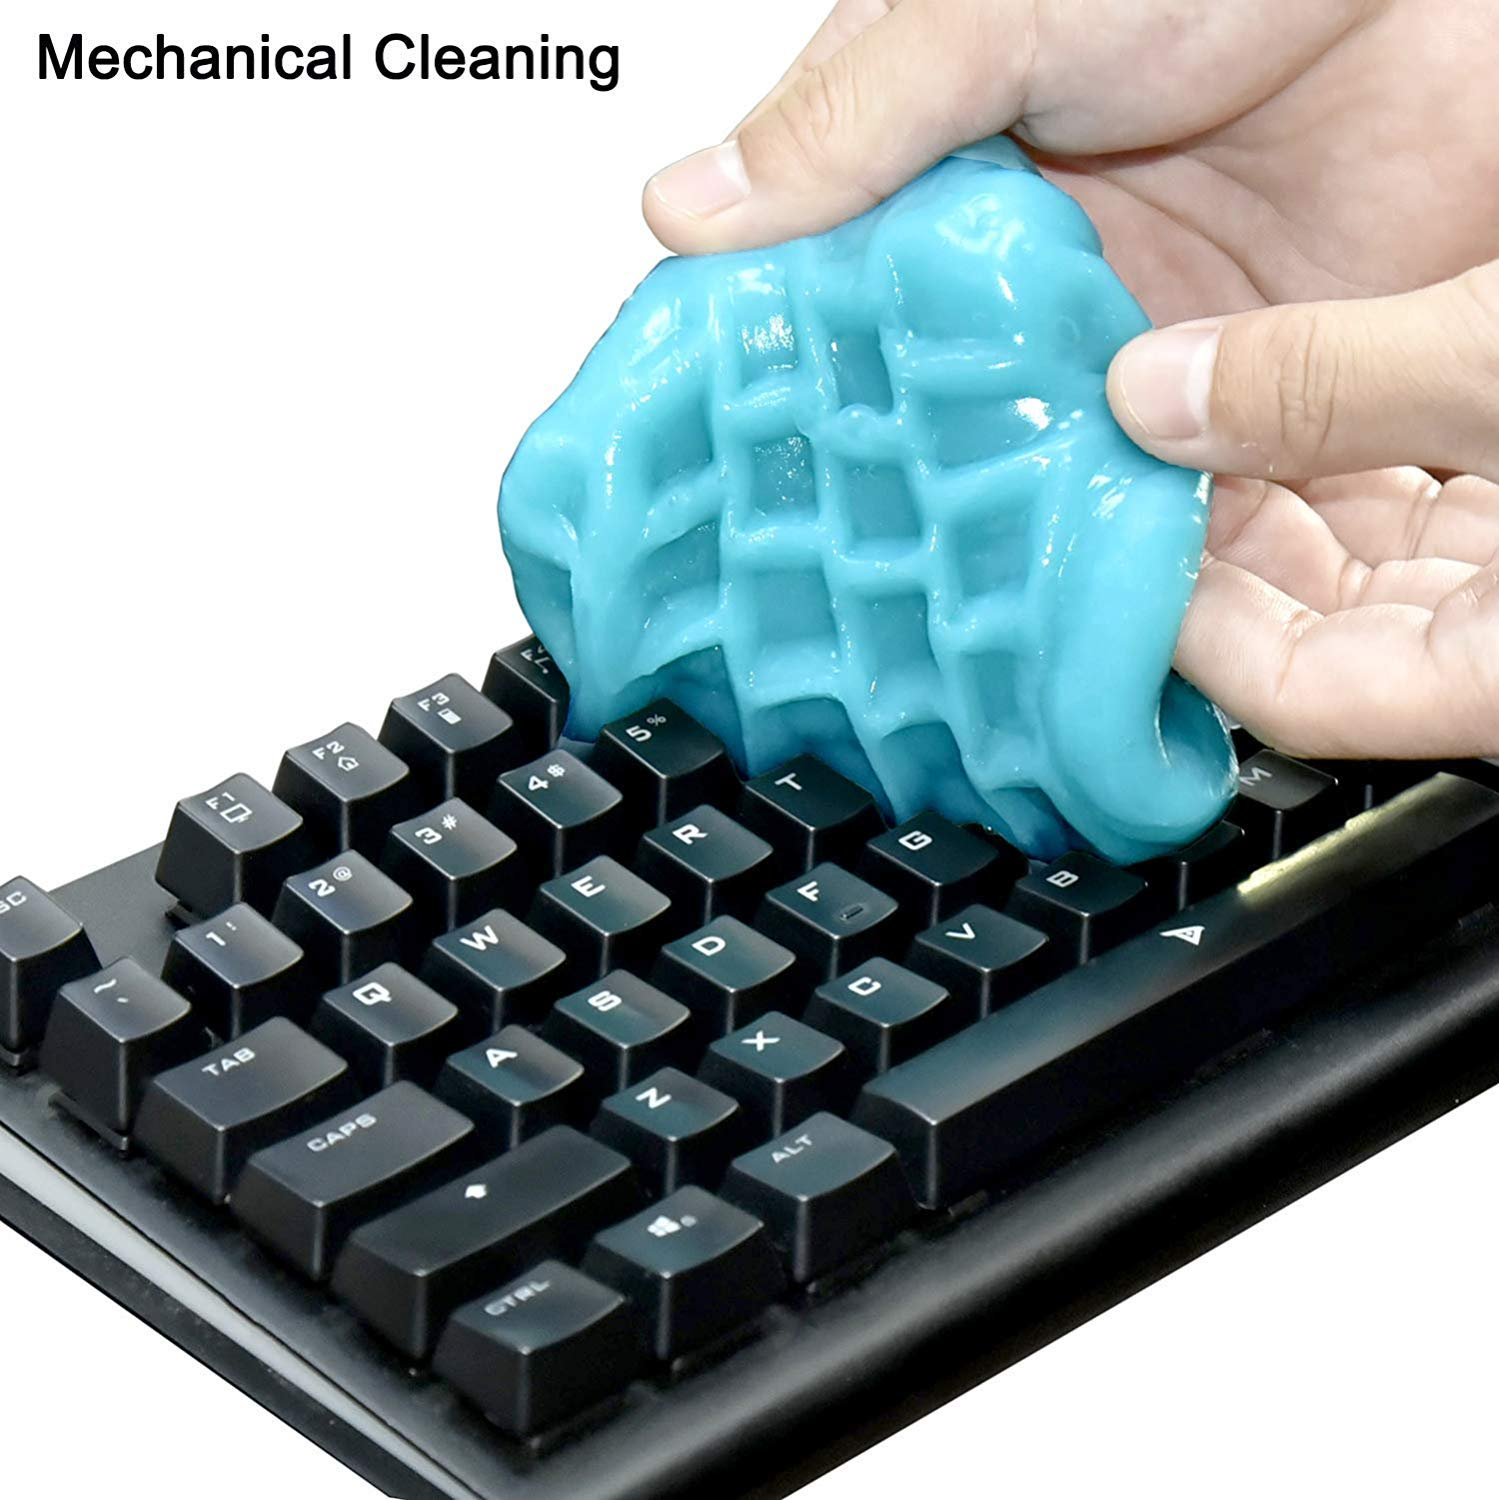 Cleaning Gel for Car Detailing Putty Cleaning Putty Detailing Gel Detail Tools Car Interior Cleaner Universal Dust Removal Gel Vent Cleaner Keyboard Cleaner for Laptop,Car Vents Printers Calculators